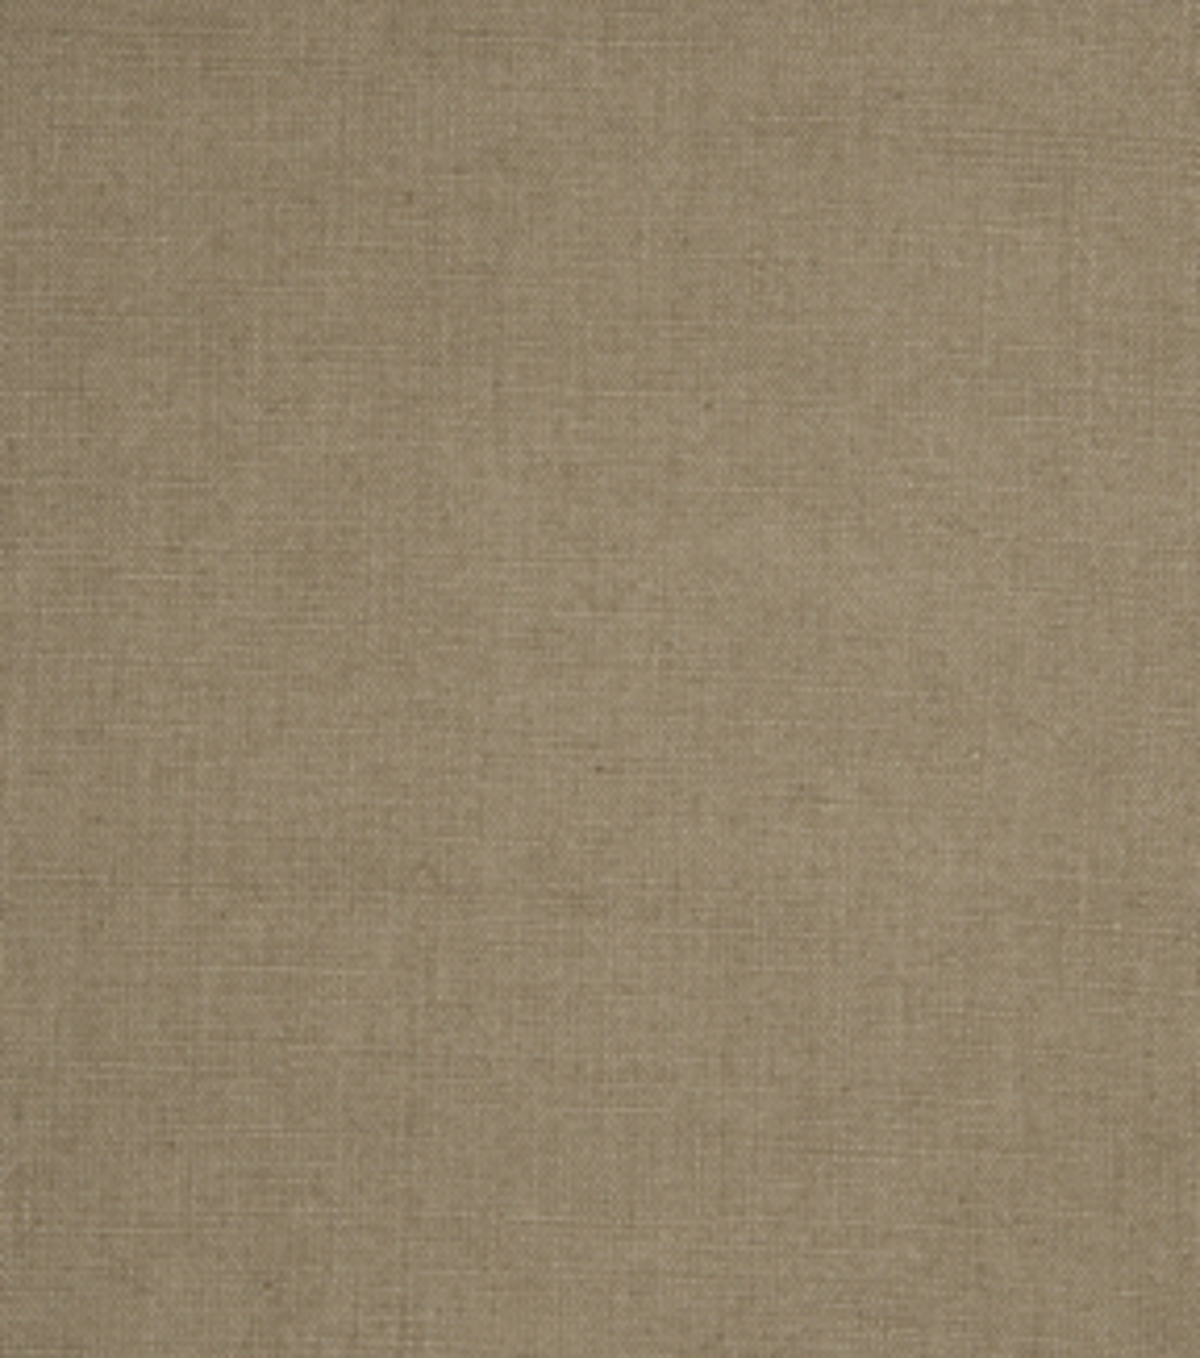 Home Decor 8\u0022x8\u0022 Fabric Swatch-Signature Series Sigourney Khaki